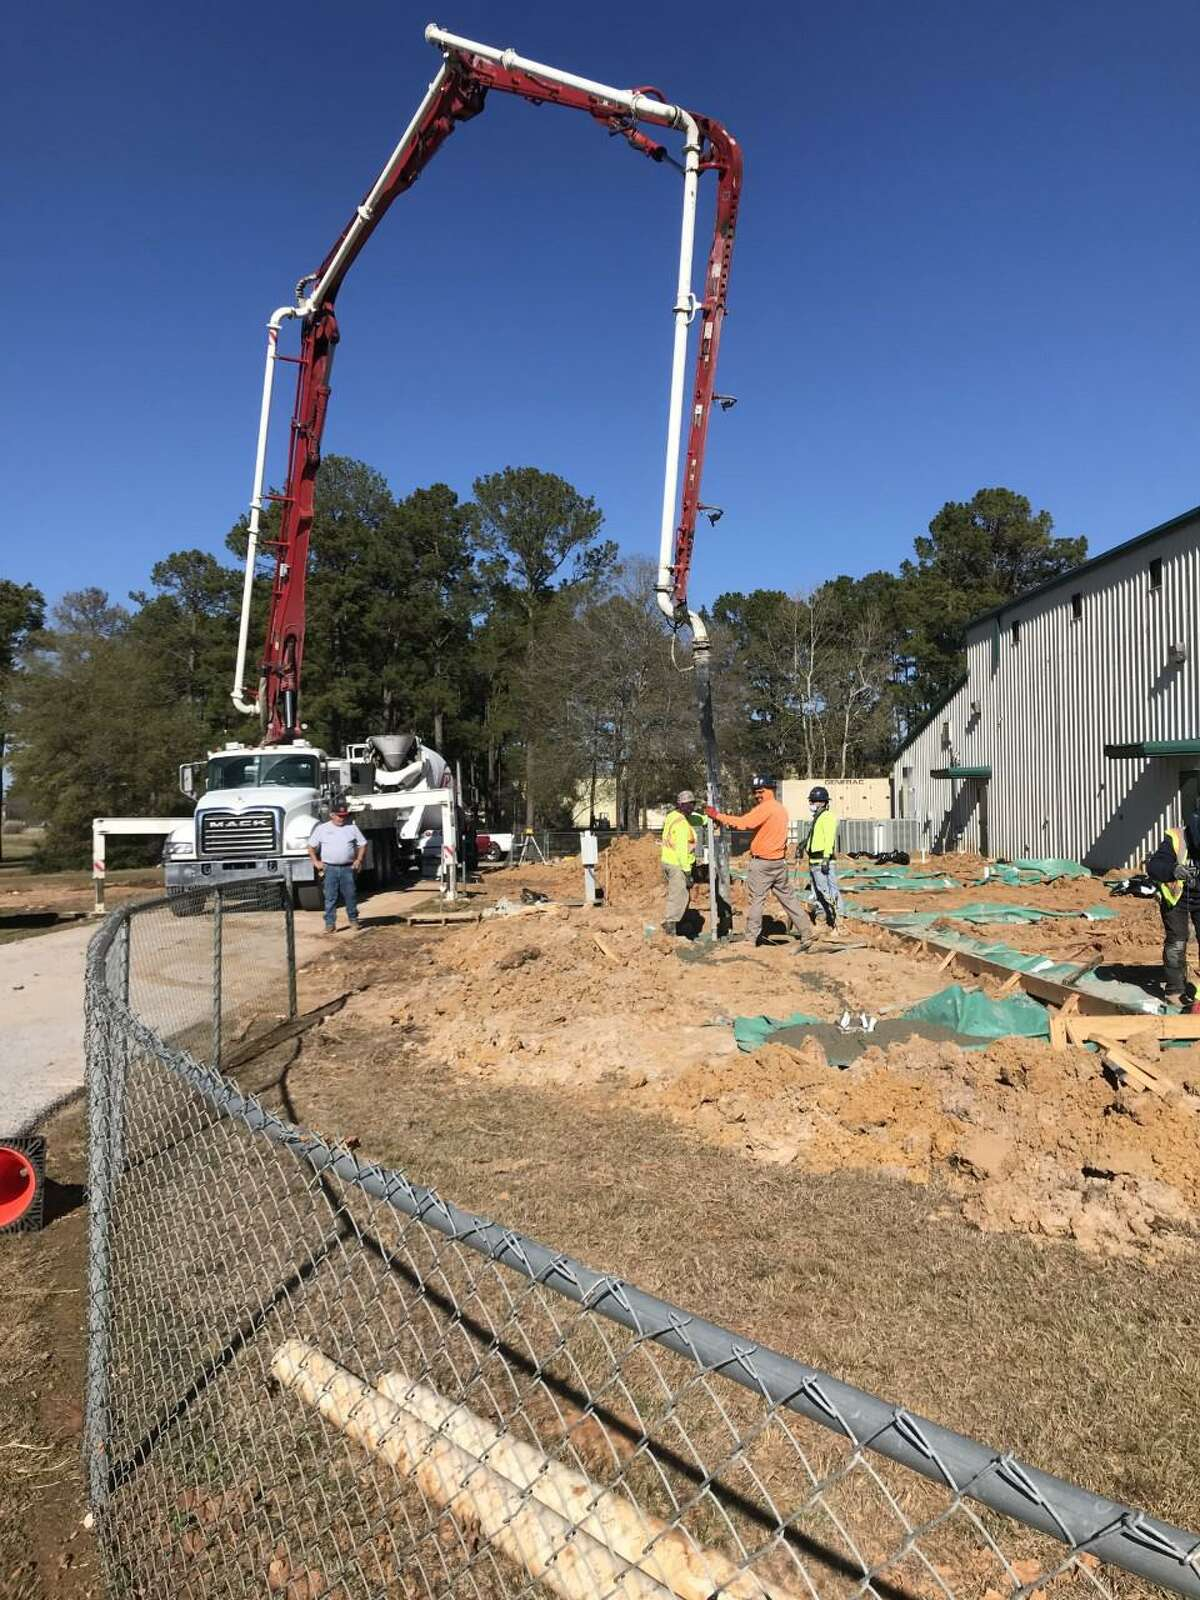 The Magnolia-based nonprofit Society of Samaritans was awarded a grant to remodel the current West Montgomery County Community Development Building.